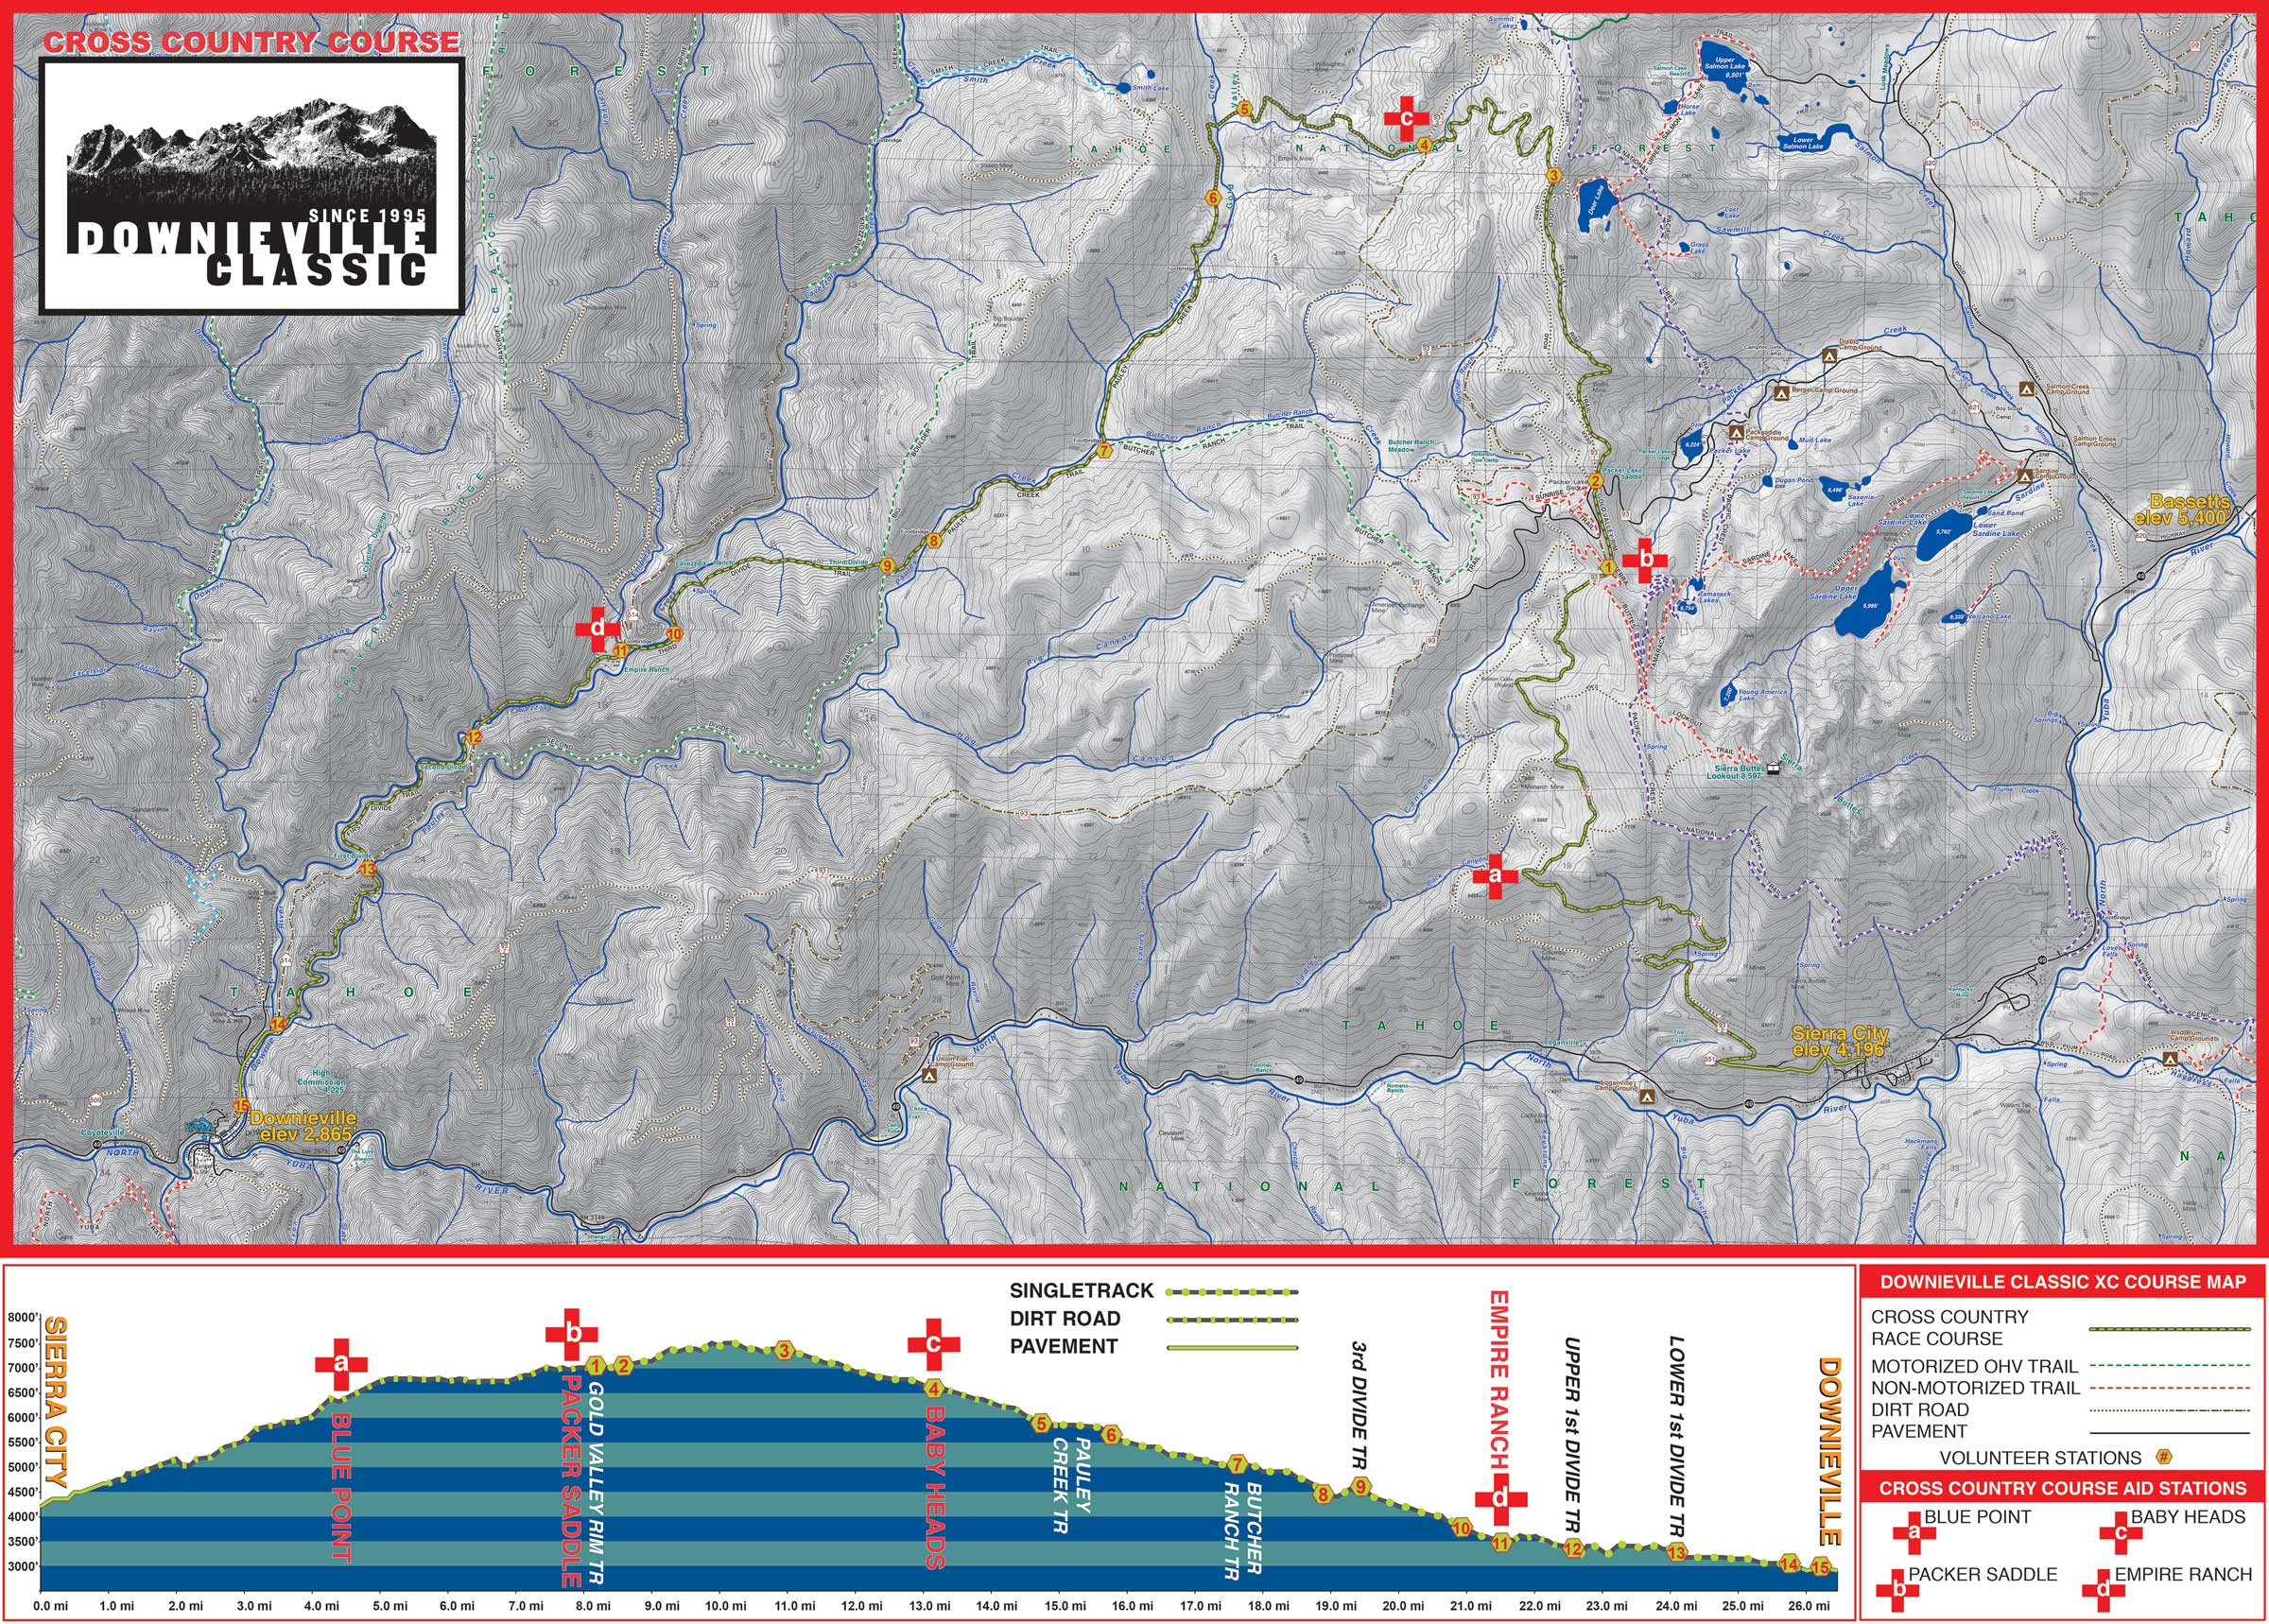 Downieville Classic Cross Country Race